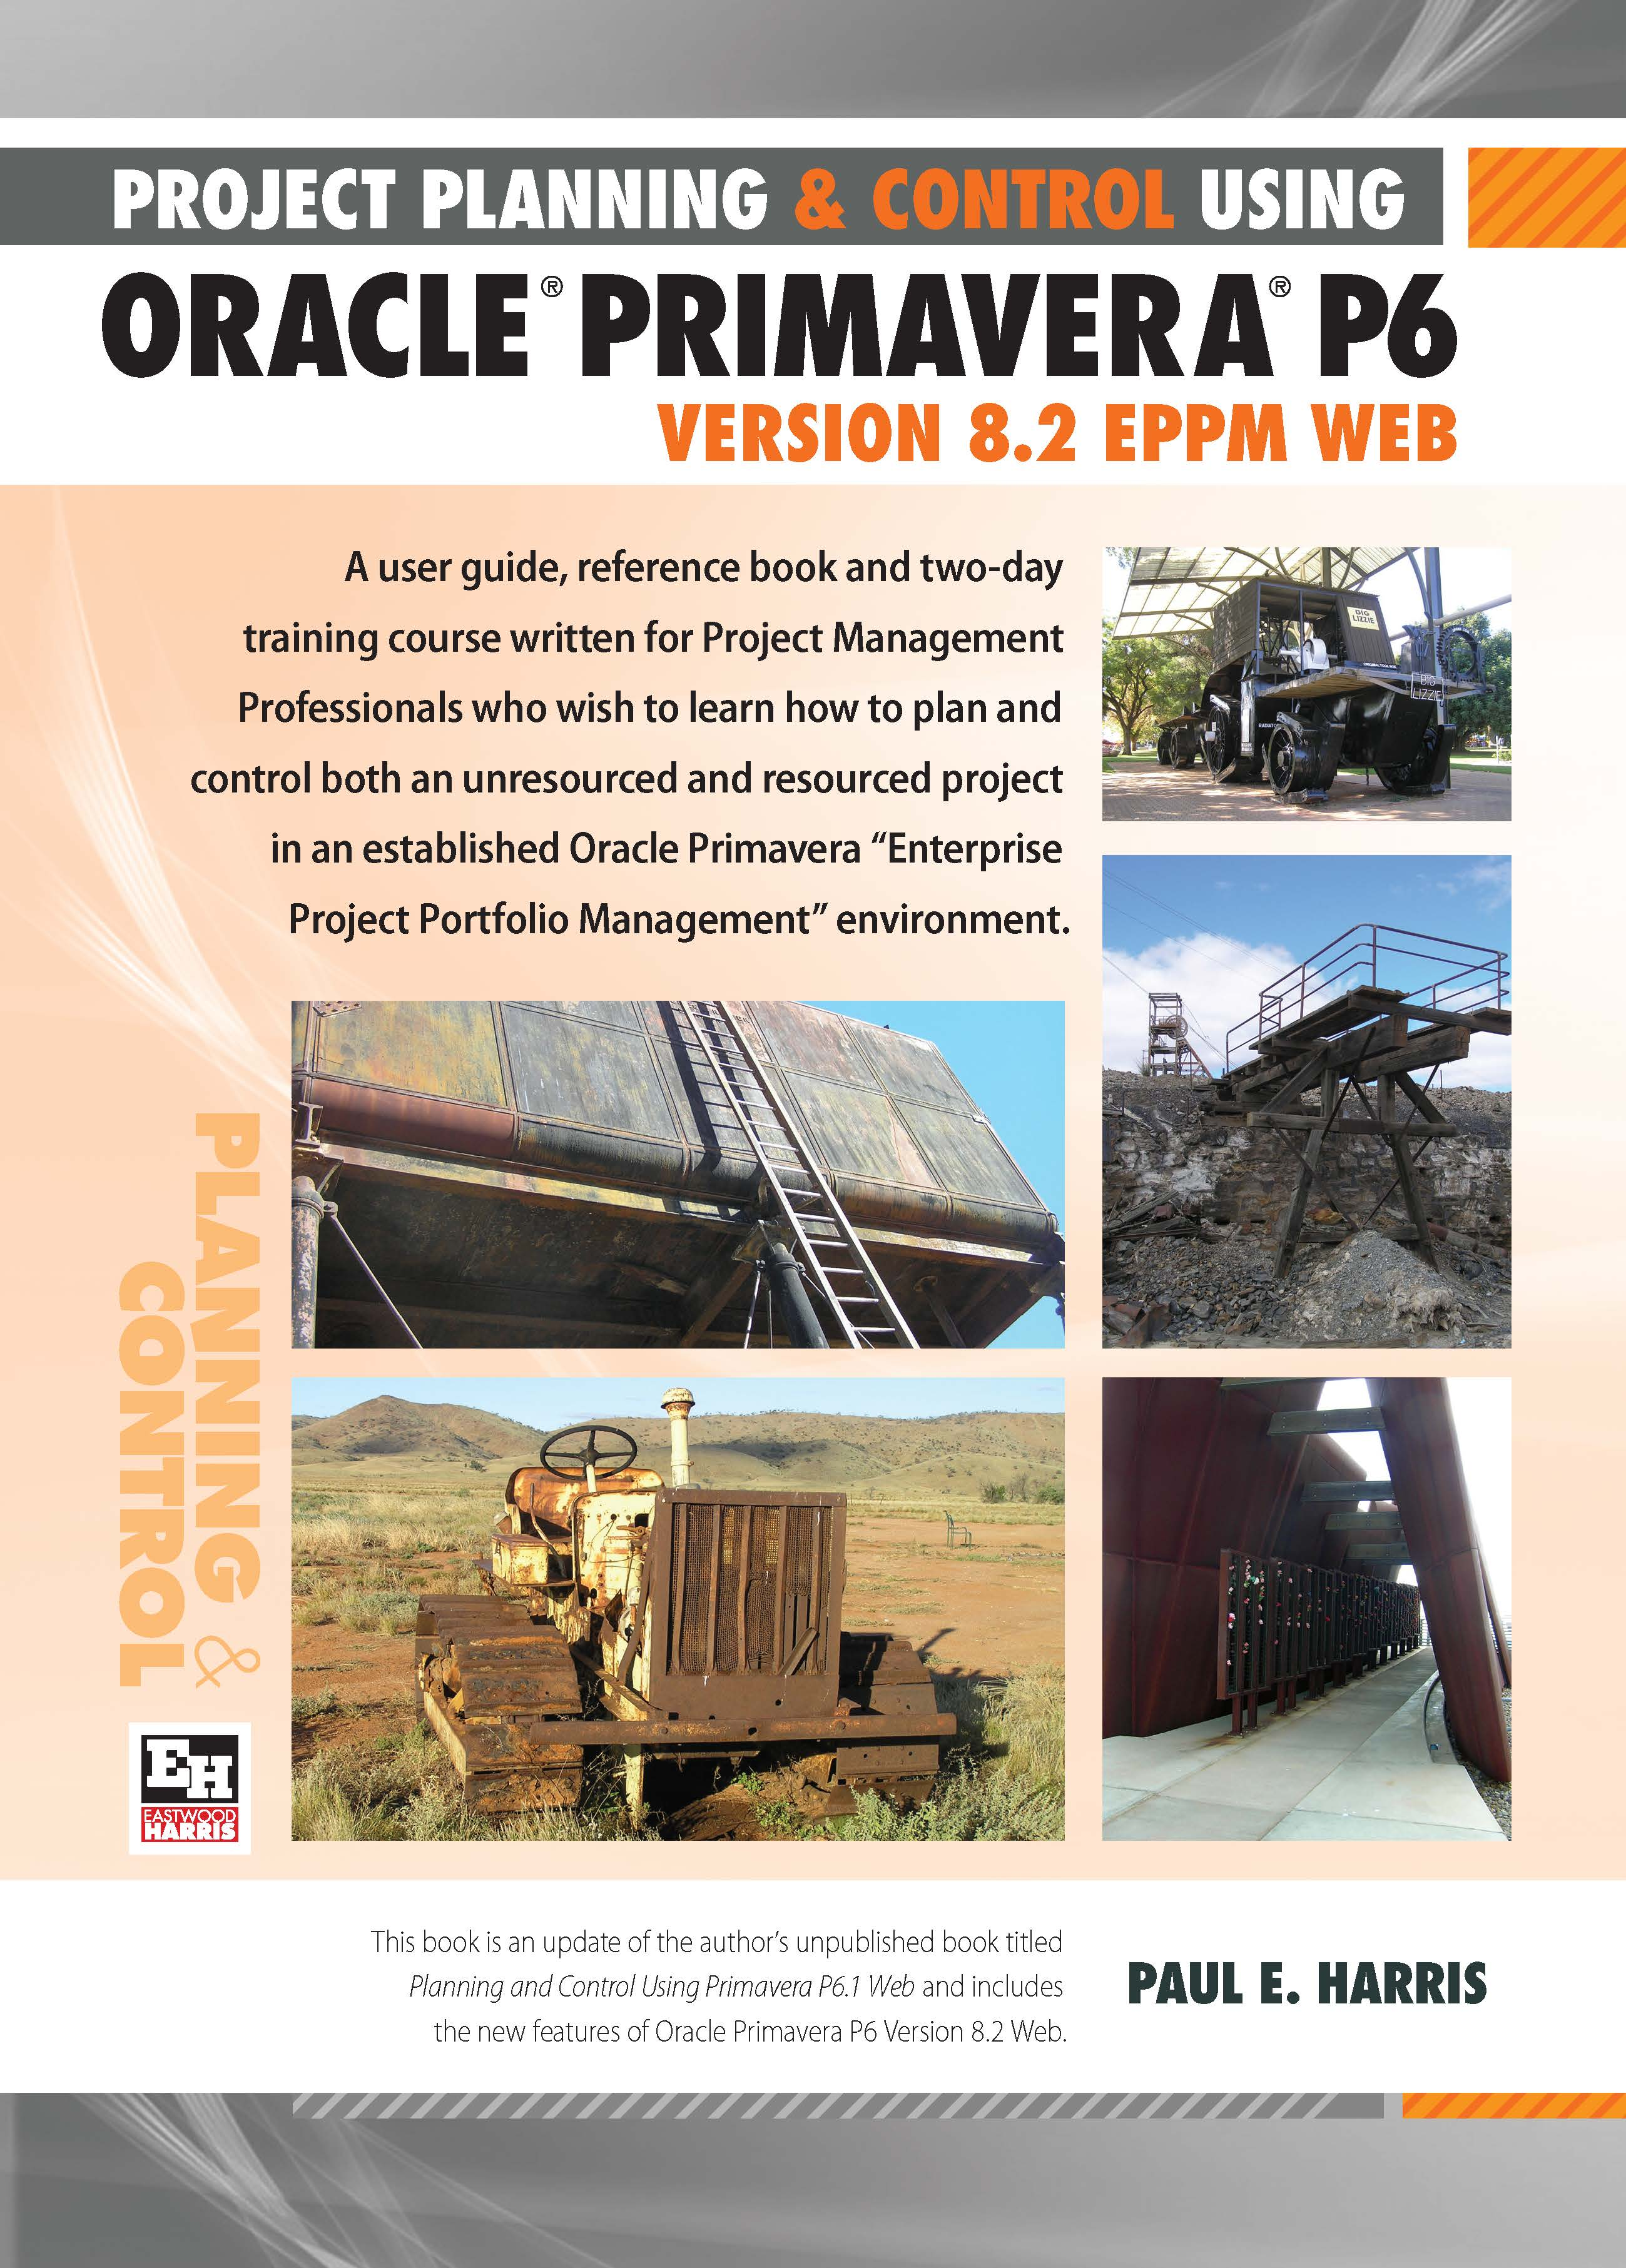 Book Reviews for Project Planning and Control Using Oracle Primavera P6  Version 8.2 EPPM Web